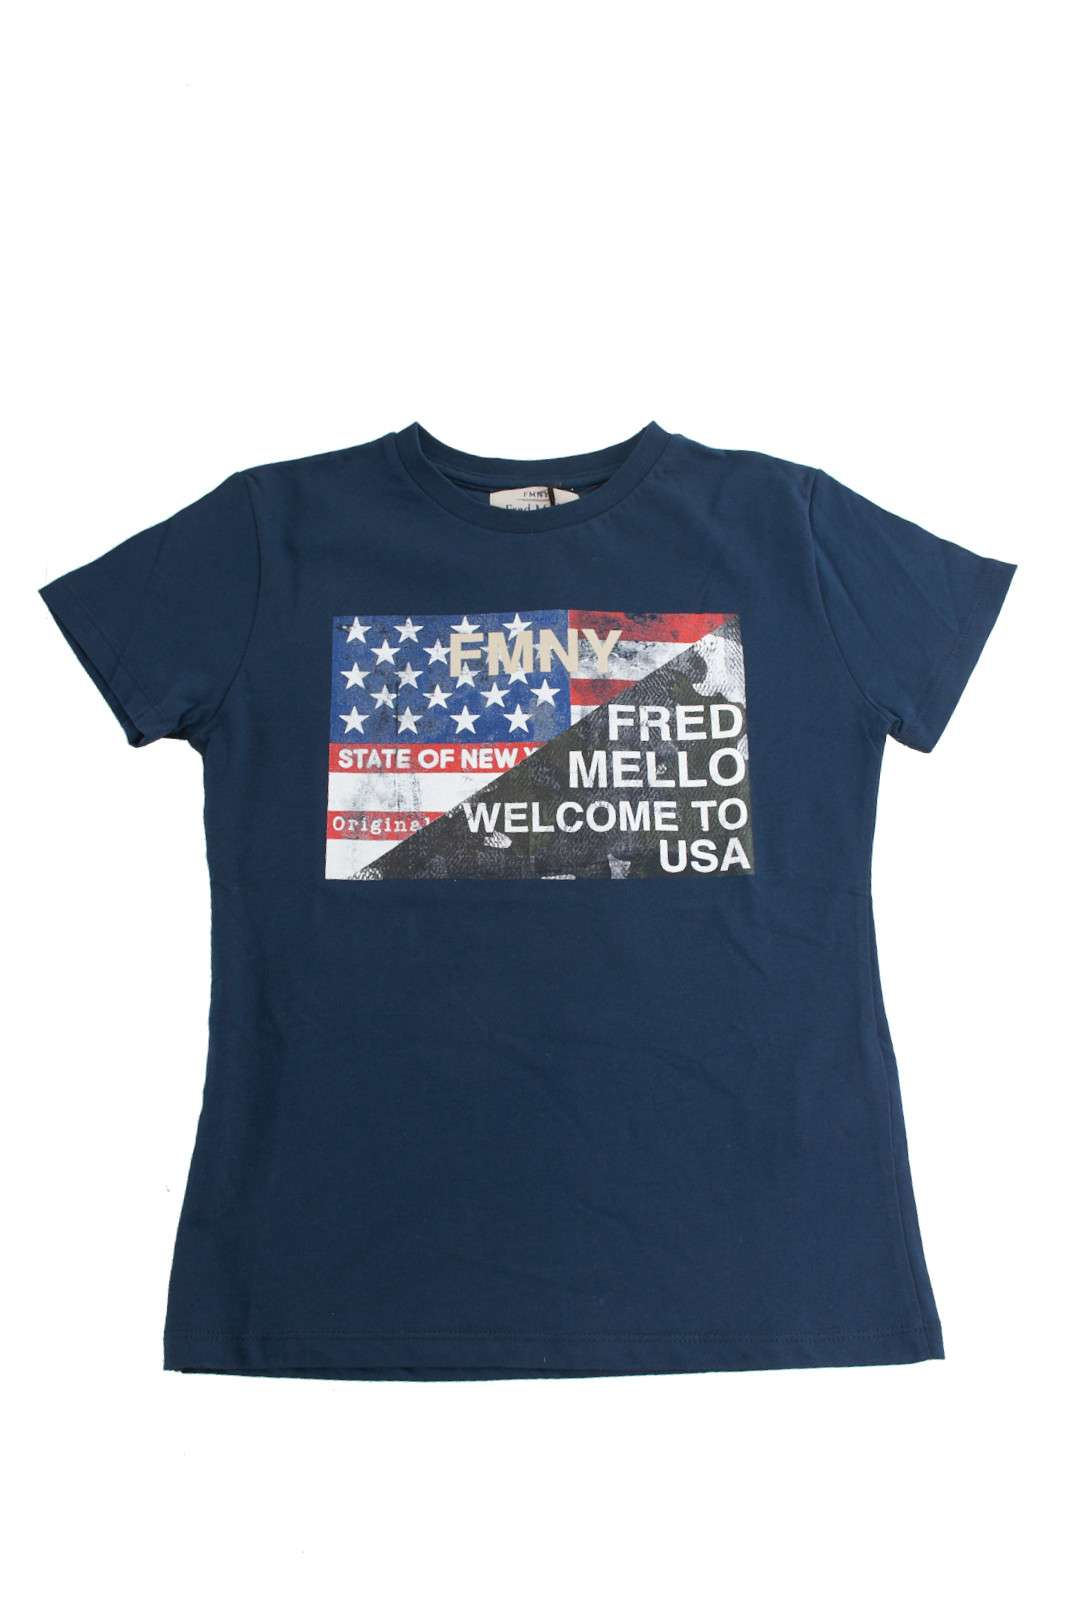 https://www.parmax.com/media/catalog/product/a/i/PE-outlet_parmax-t-shirt-bambino-Fred-Mello-018407-A.jpg